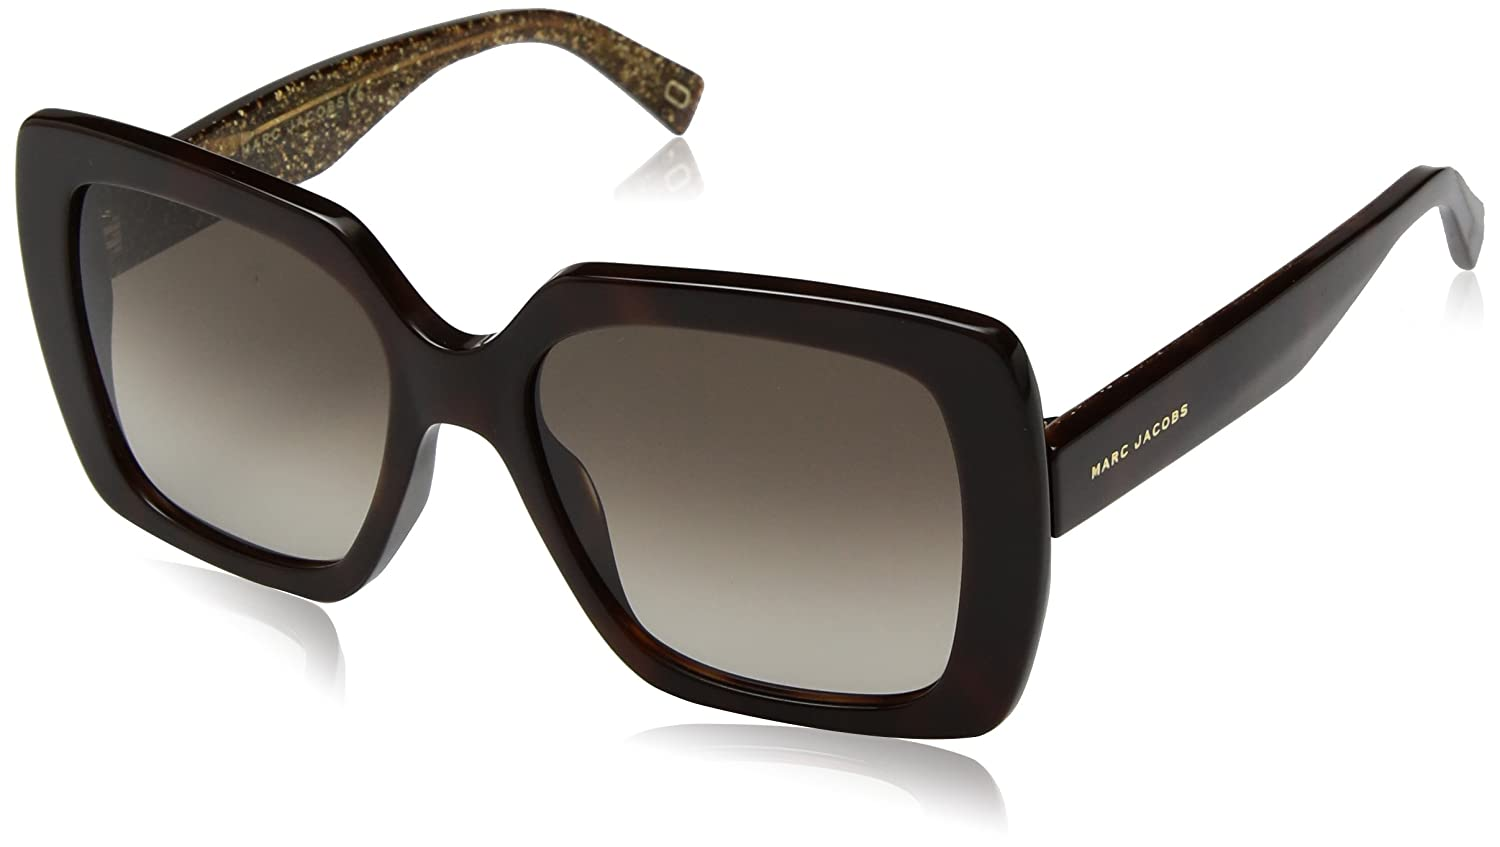 Marc Jacobs Women' 's 230/S HA DXH 53 Sunglasses, (Hay Bwglt Gld/Bw Brown) MARC 230/S HA